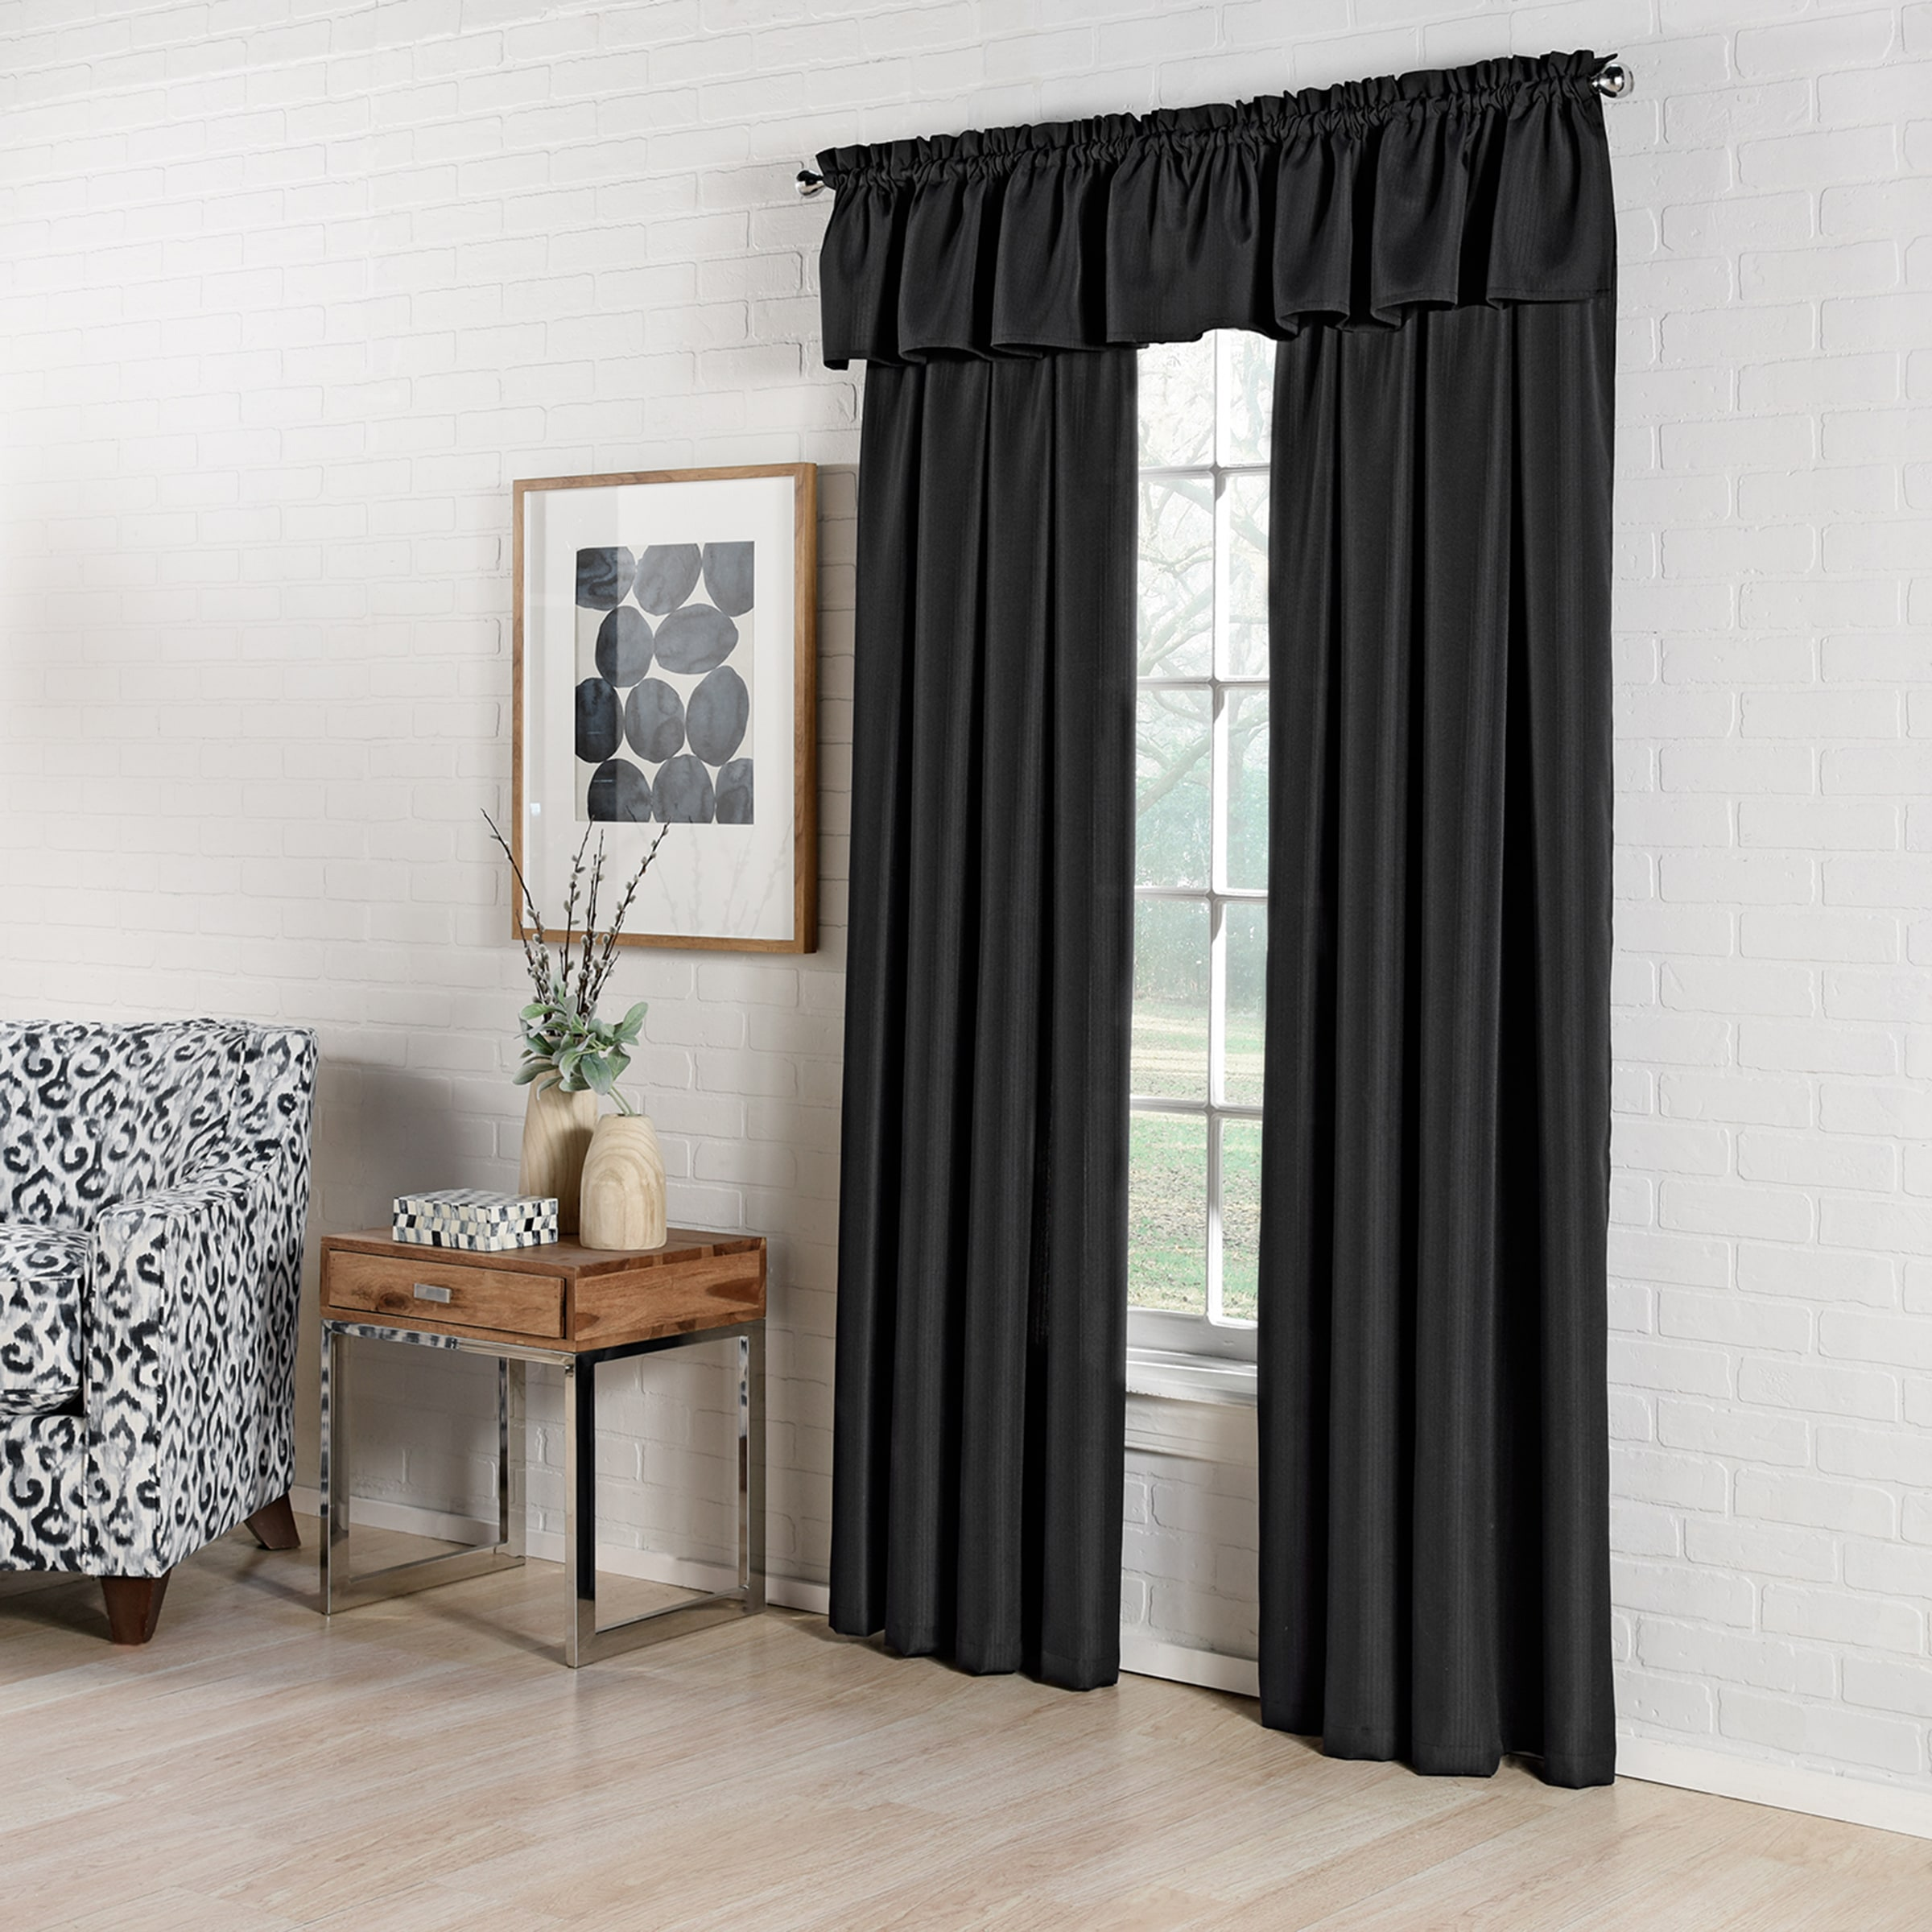 Ribcord Panel - Black- Featured with Valance